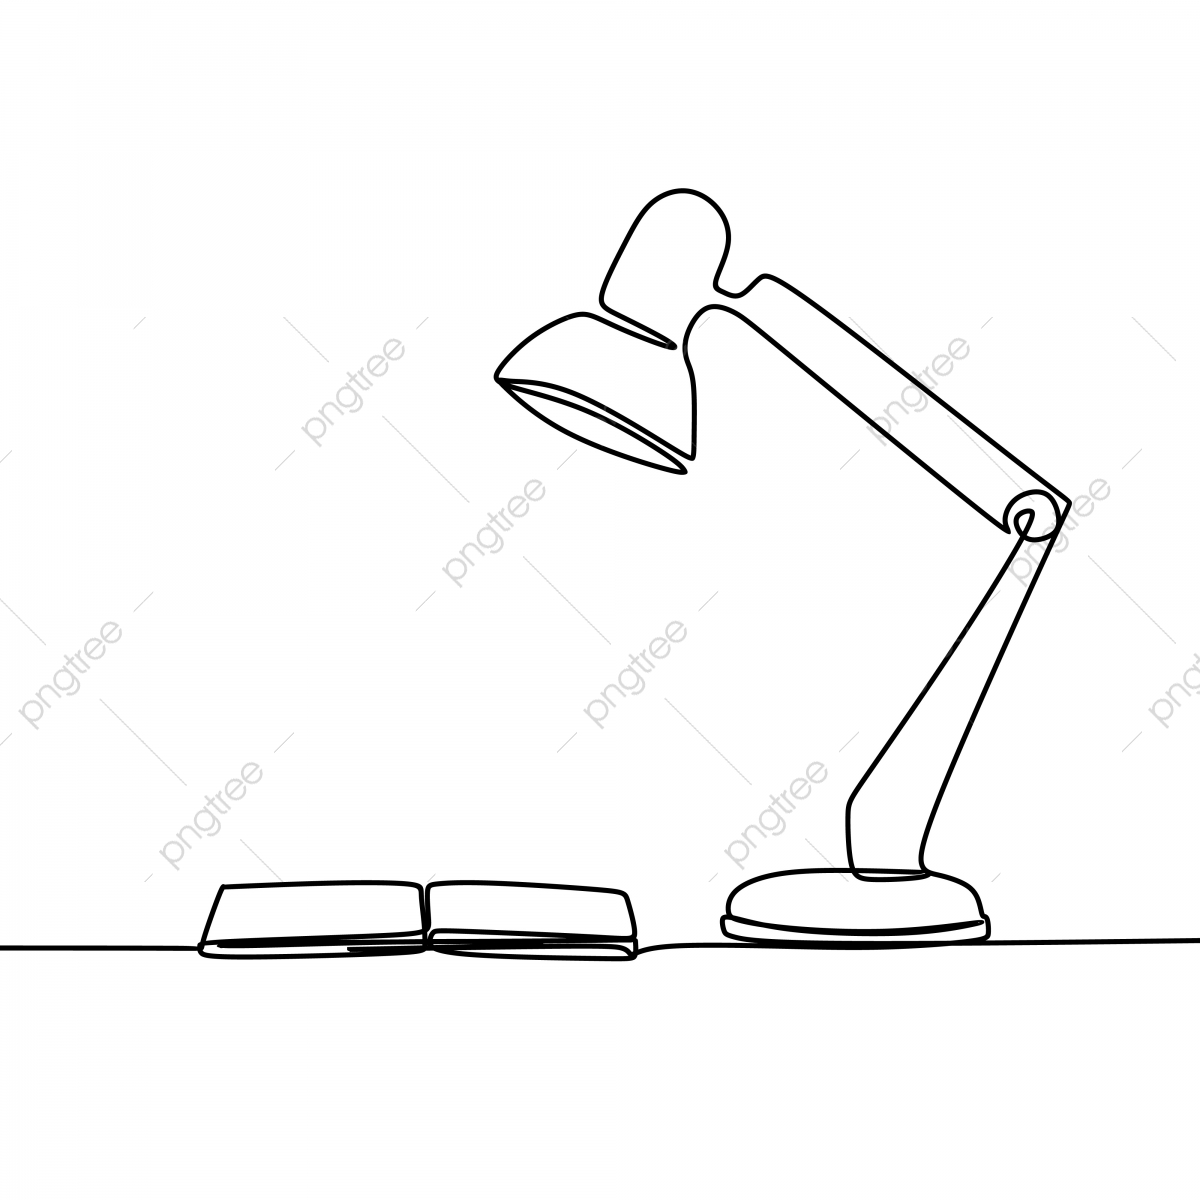 one line art drawing of a study lamp and a book on the table isolated on white background